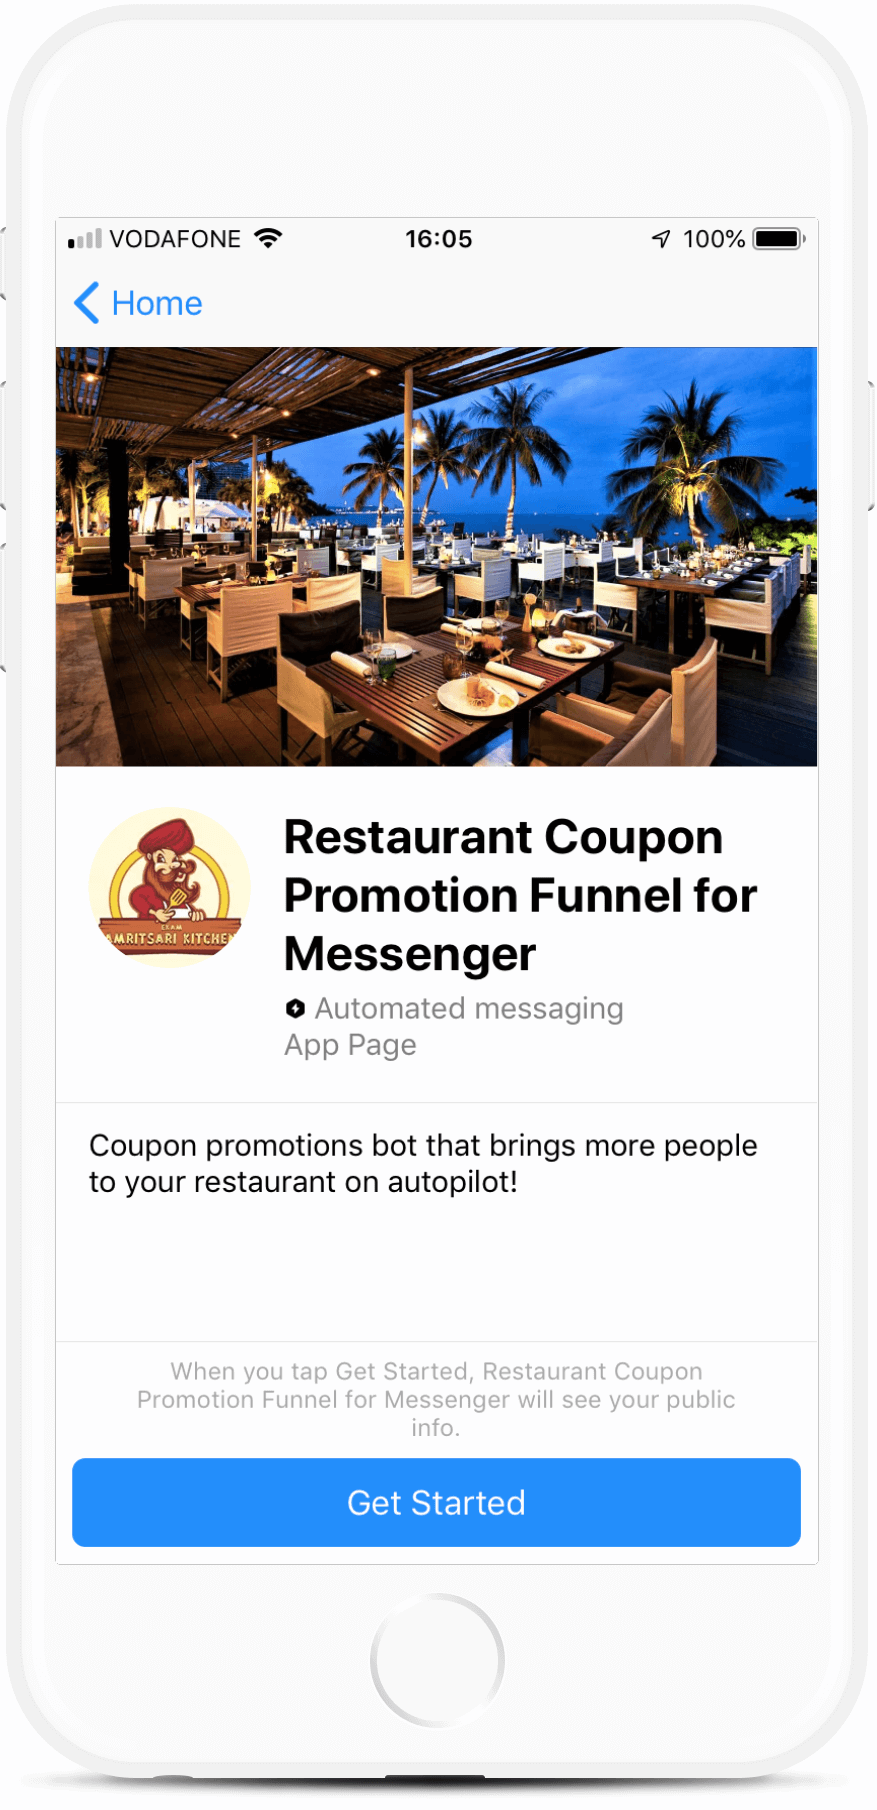 Restaurant Coupon Promotion Funnel for Messenger bot screenshot